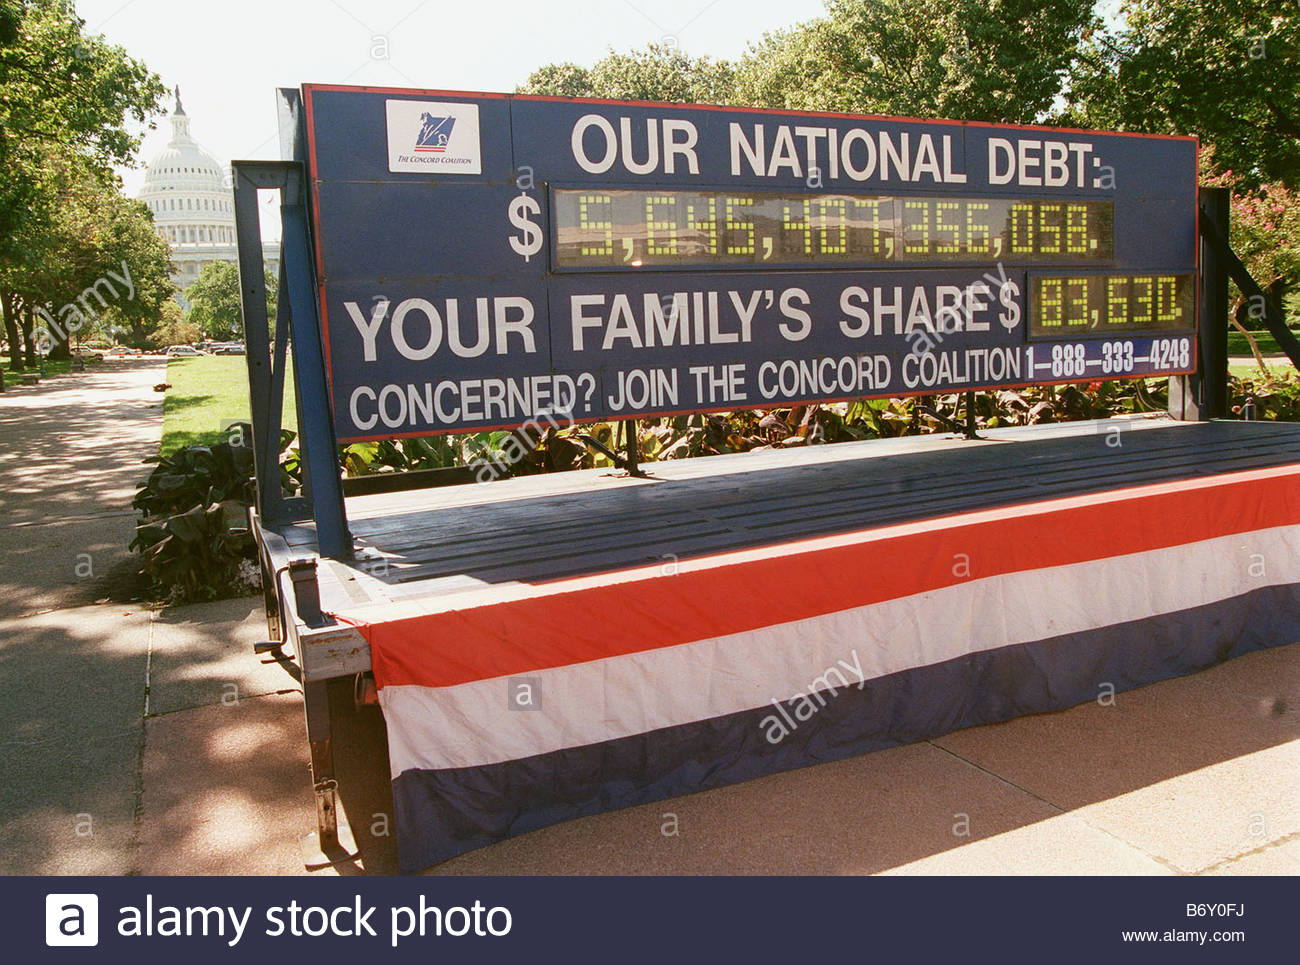 10 1 99 NATIONAL DEBT After a news conference highlighting the national debt Concord Coalition s debt clock sits - Stock Image